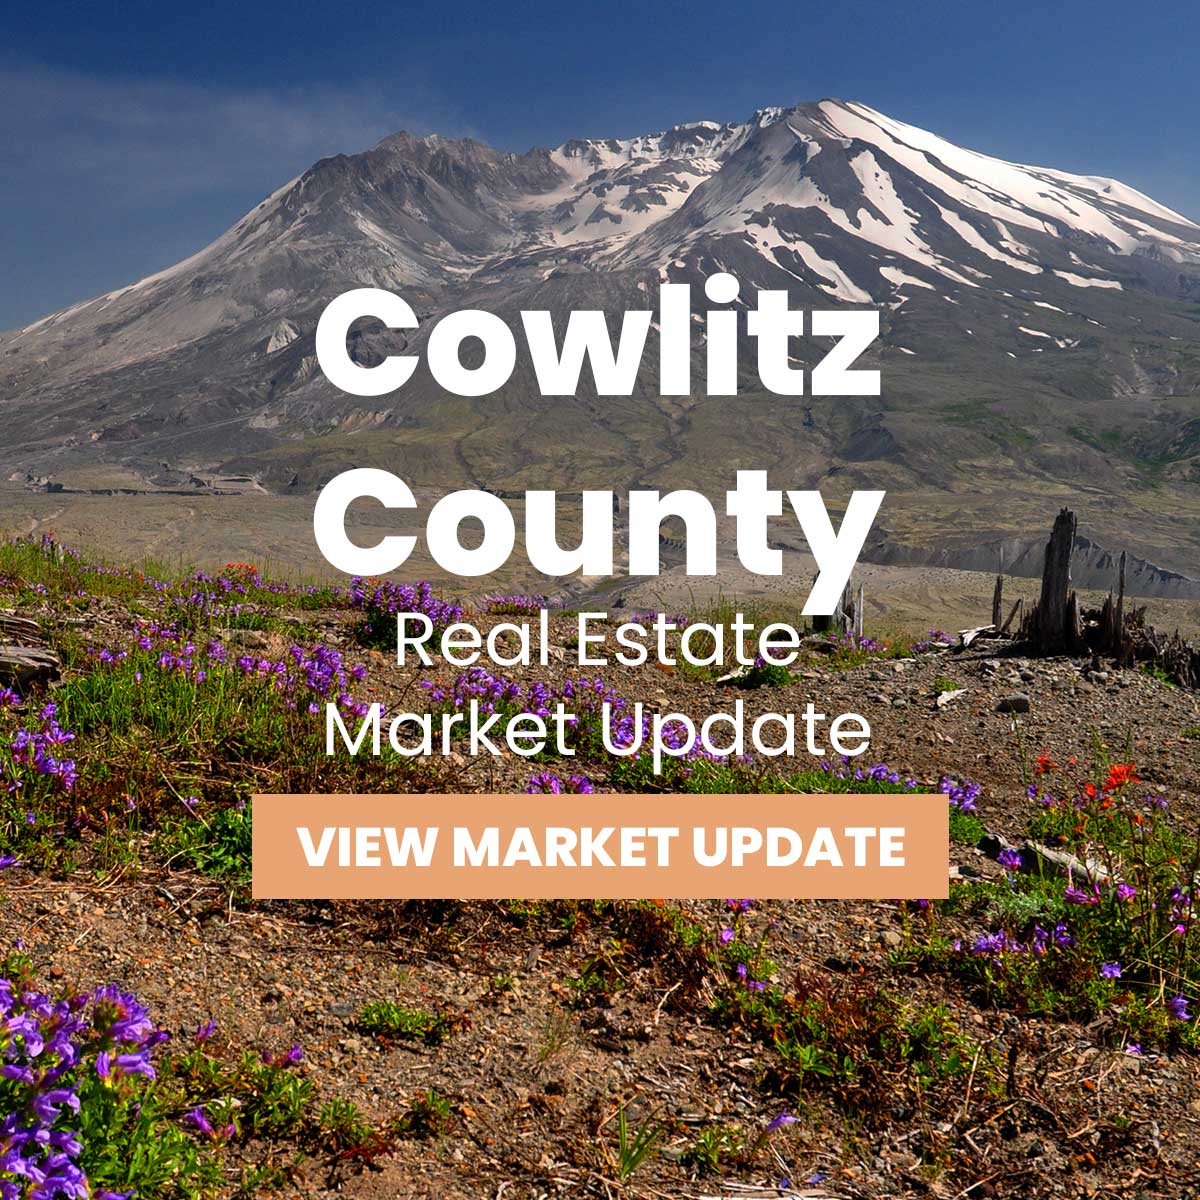 Cowlitz County Real Estate Market Update